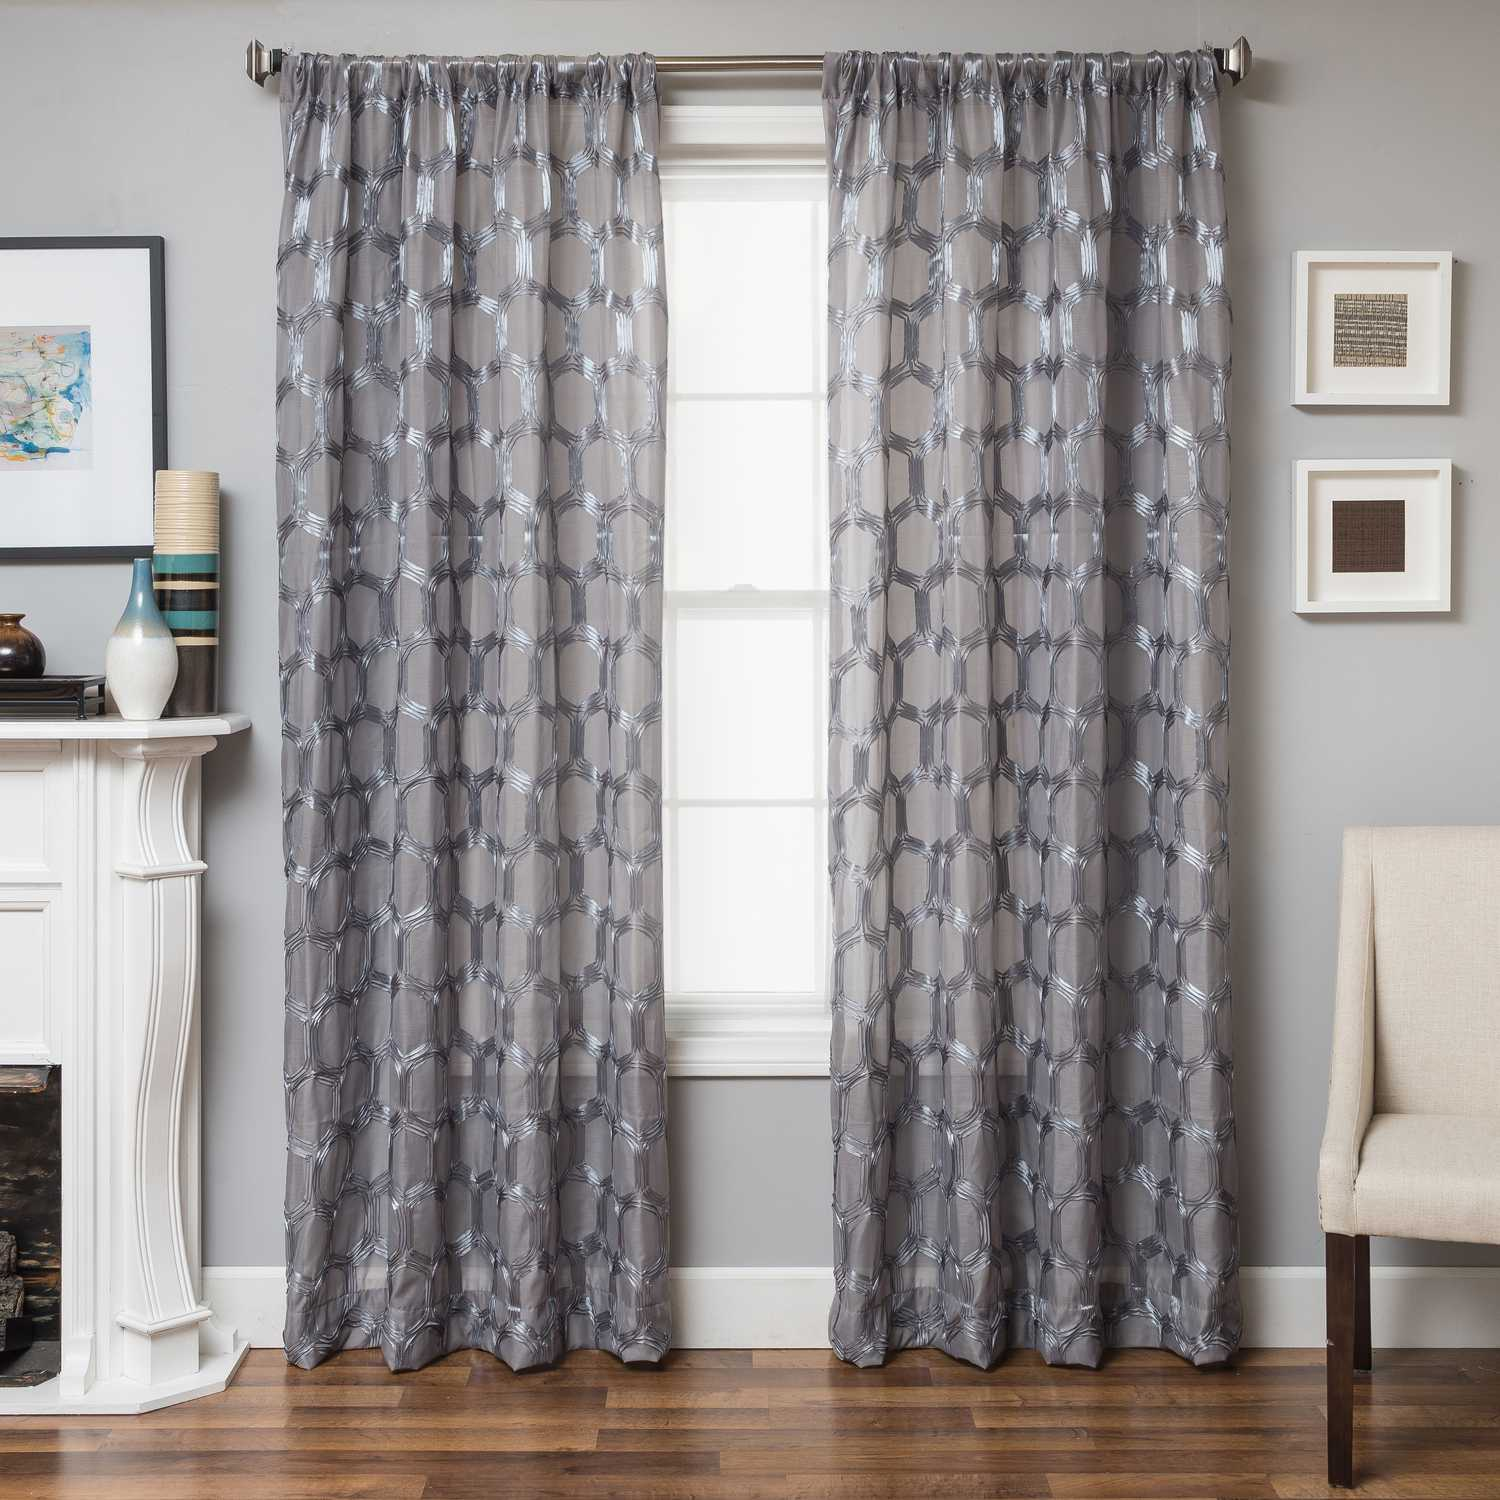 Drapery Panels Gallery Of Decor Gorgeous Grommet Curtains